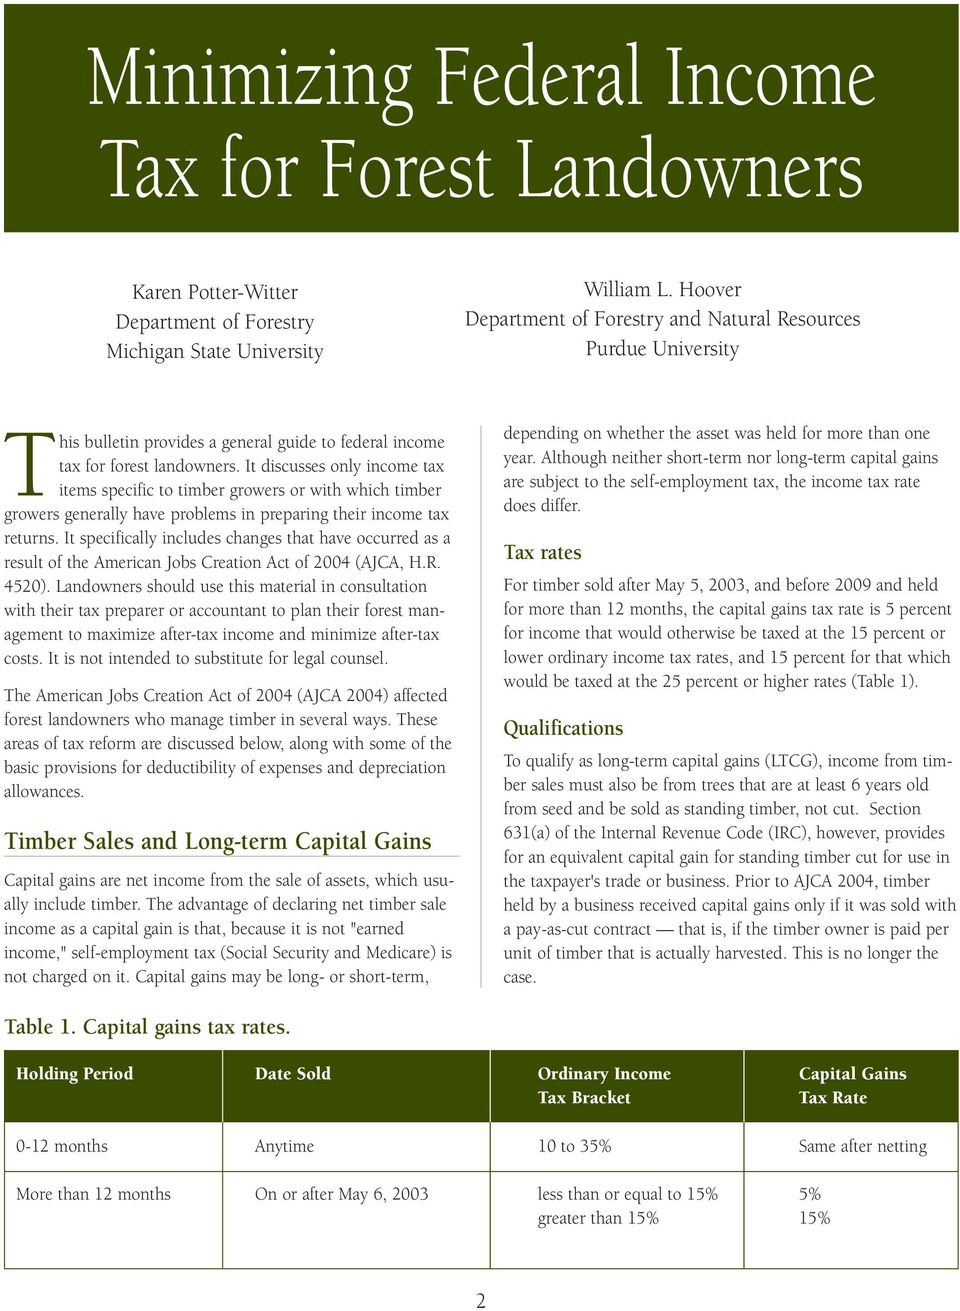 It discusses only income tax items specific to timber growers or with which timber growers generally have problems in preparing their income tax returns.